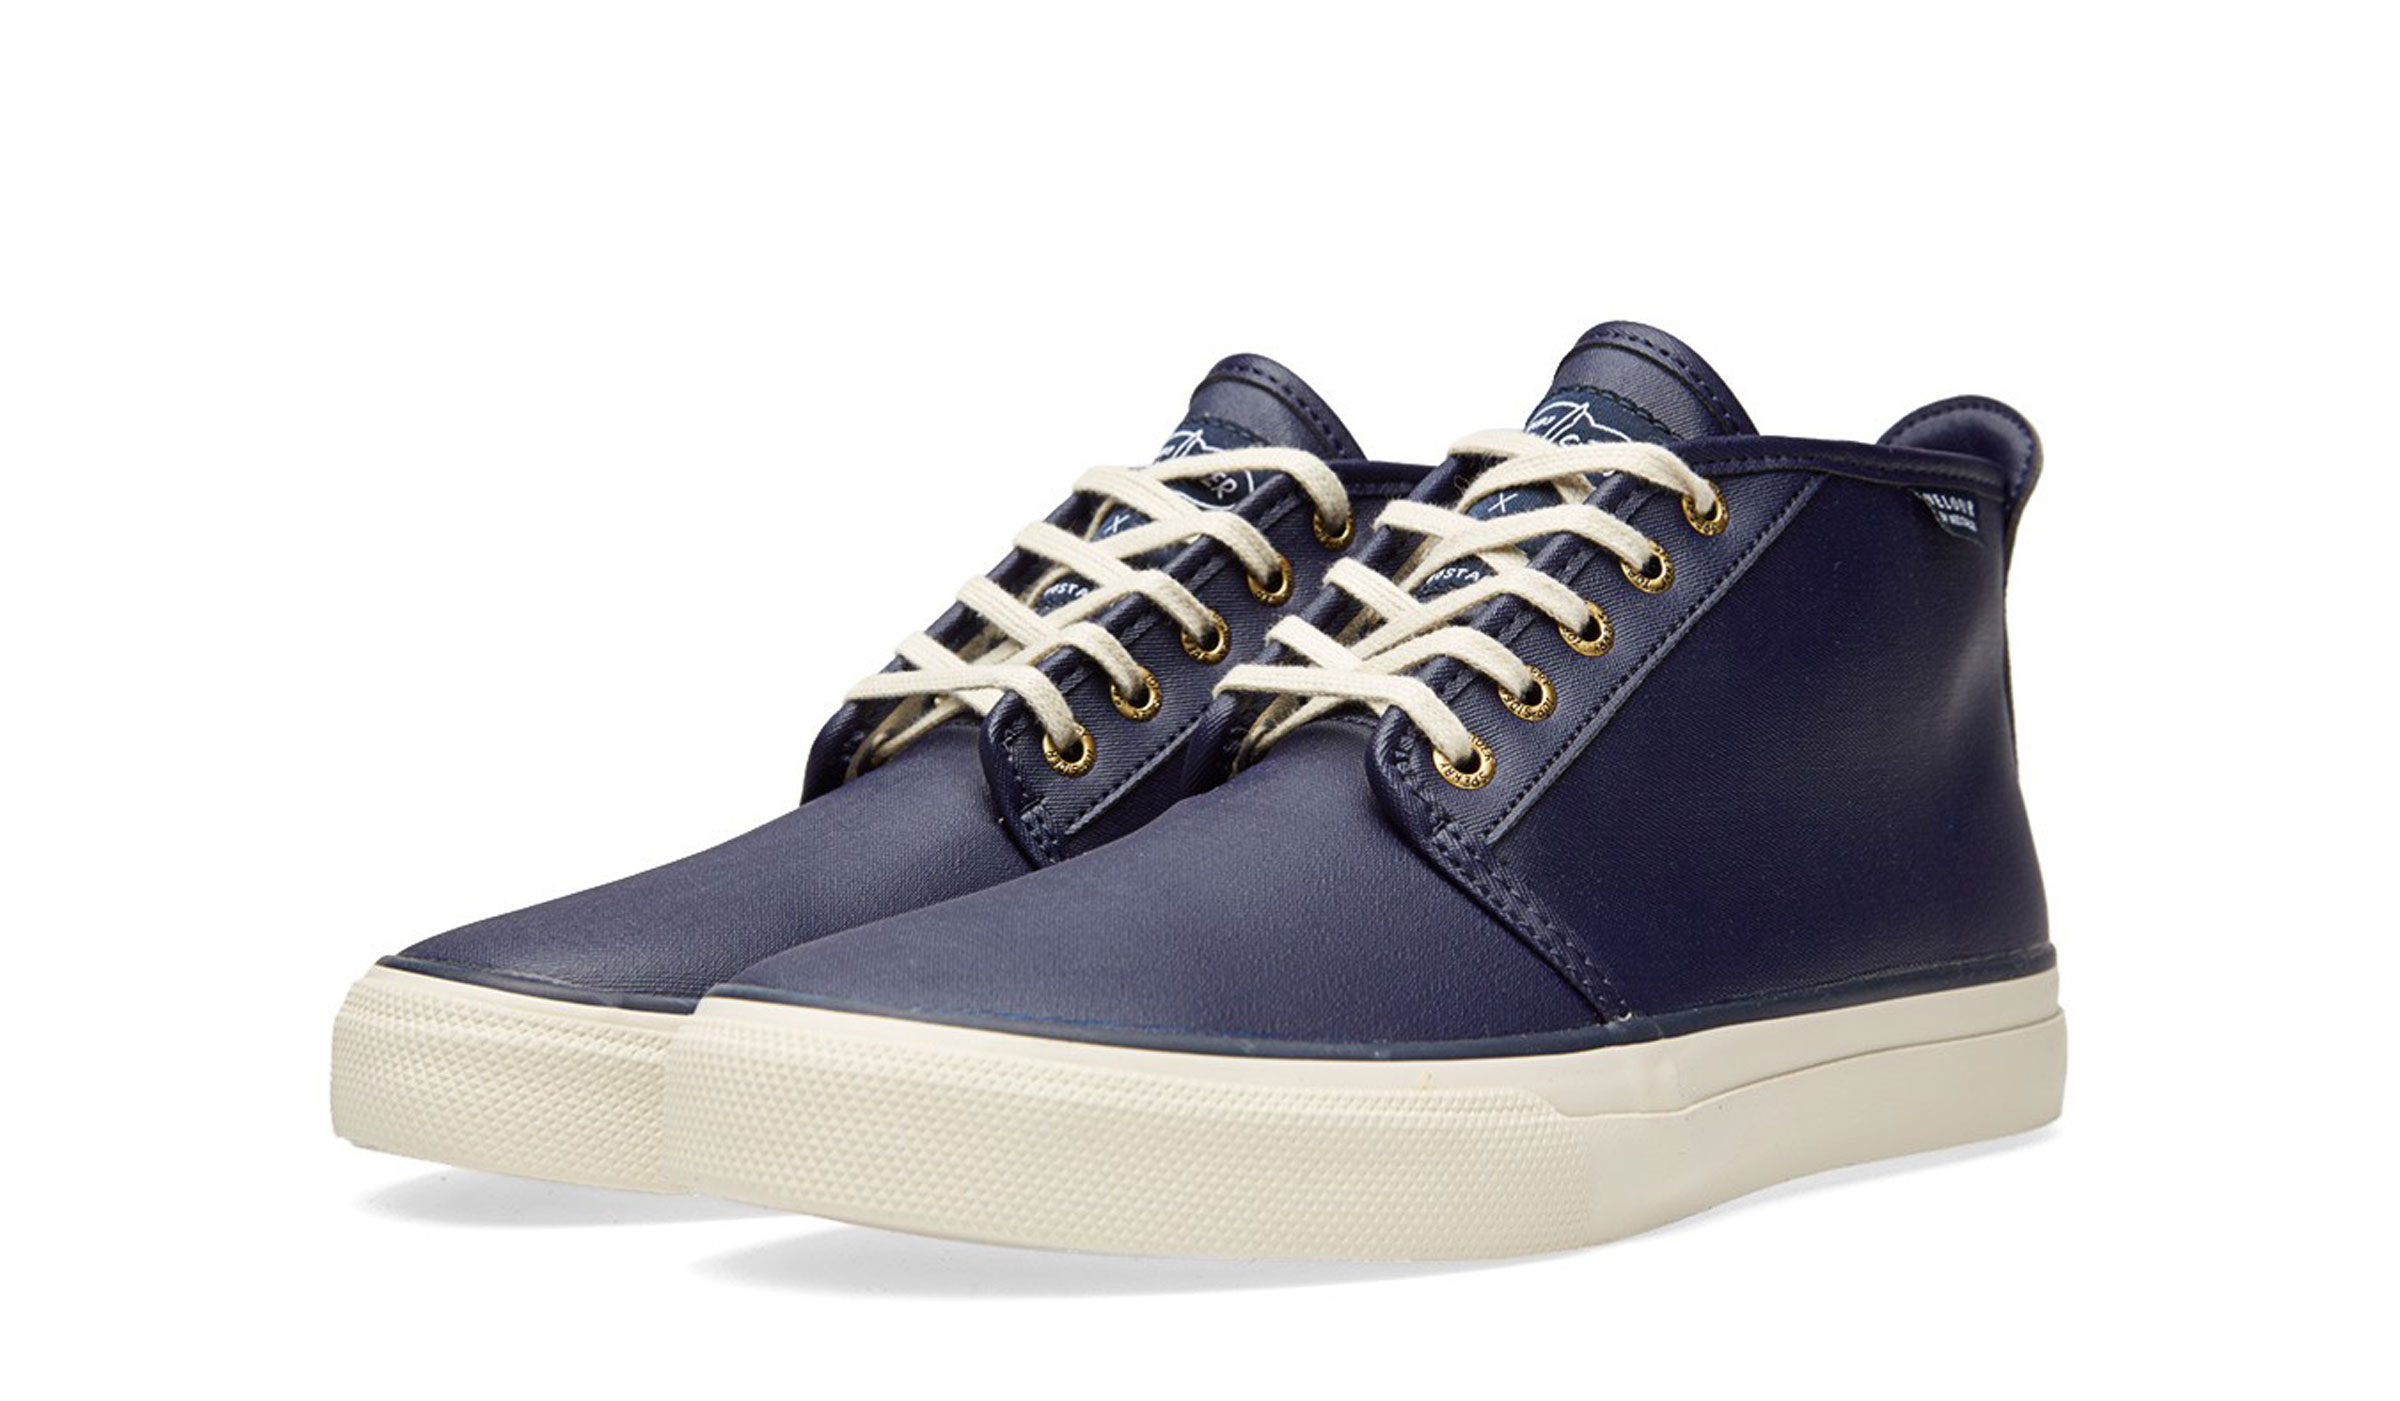 SPERRY TOPSIDER X VELOUR CLOUD CHUKKA - NAVY